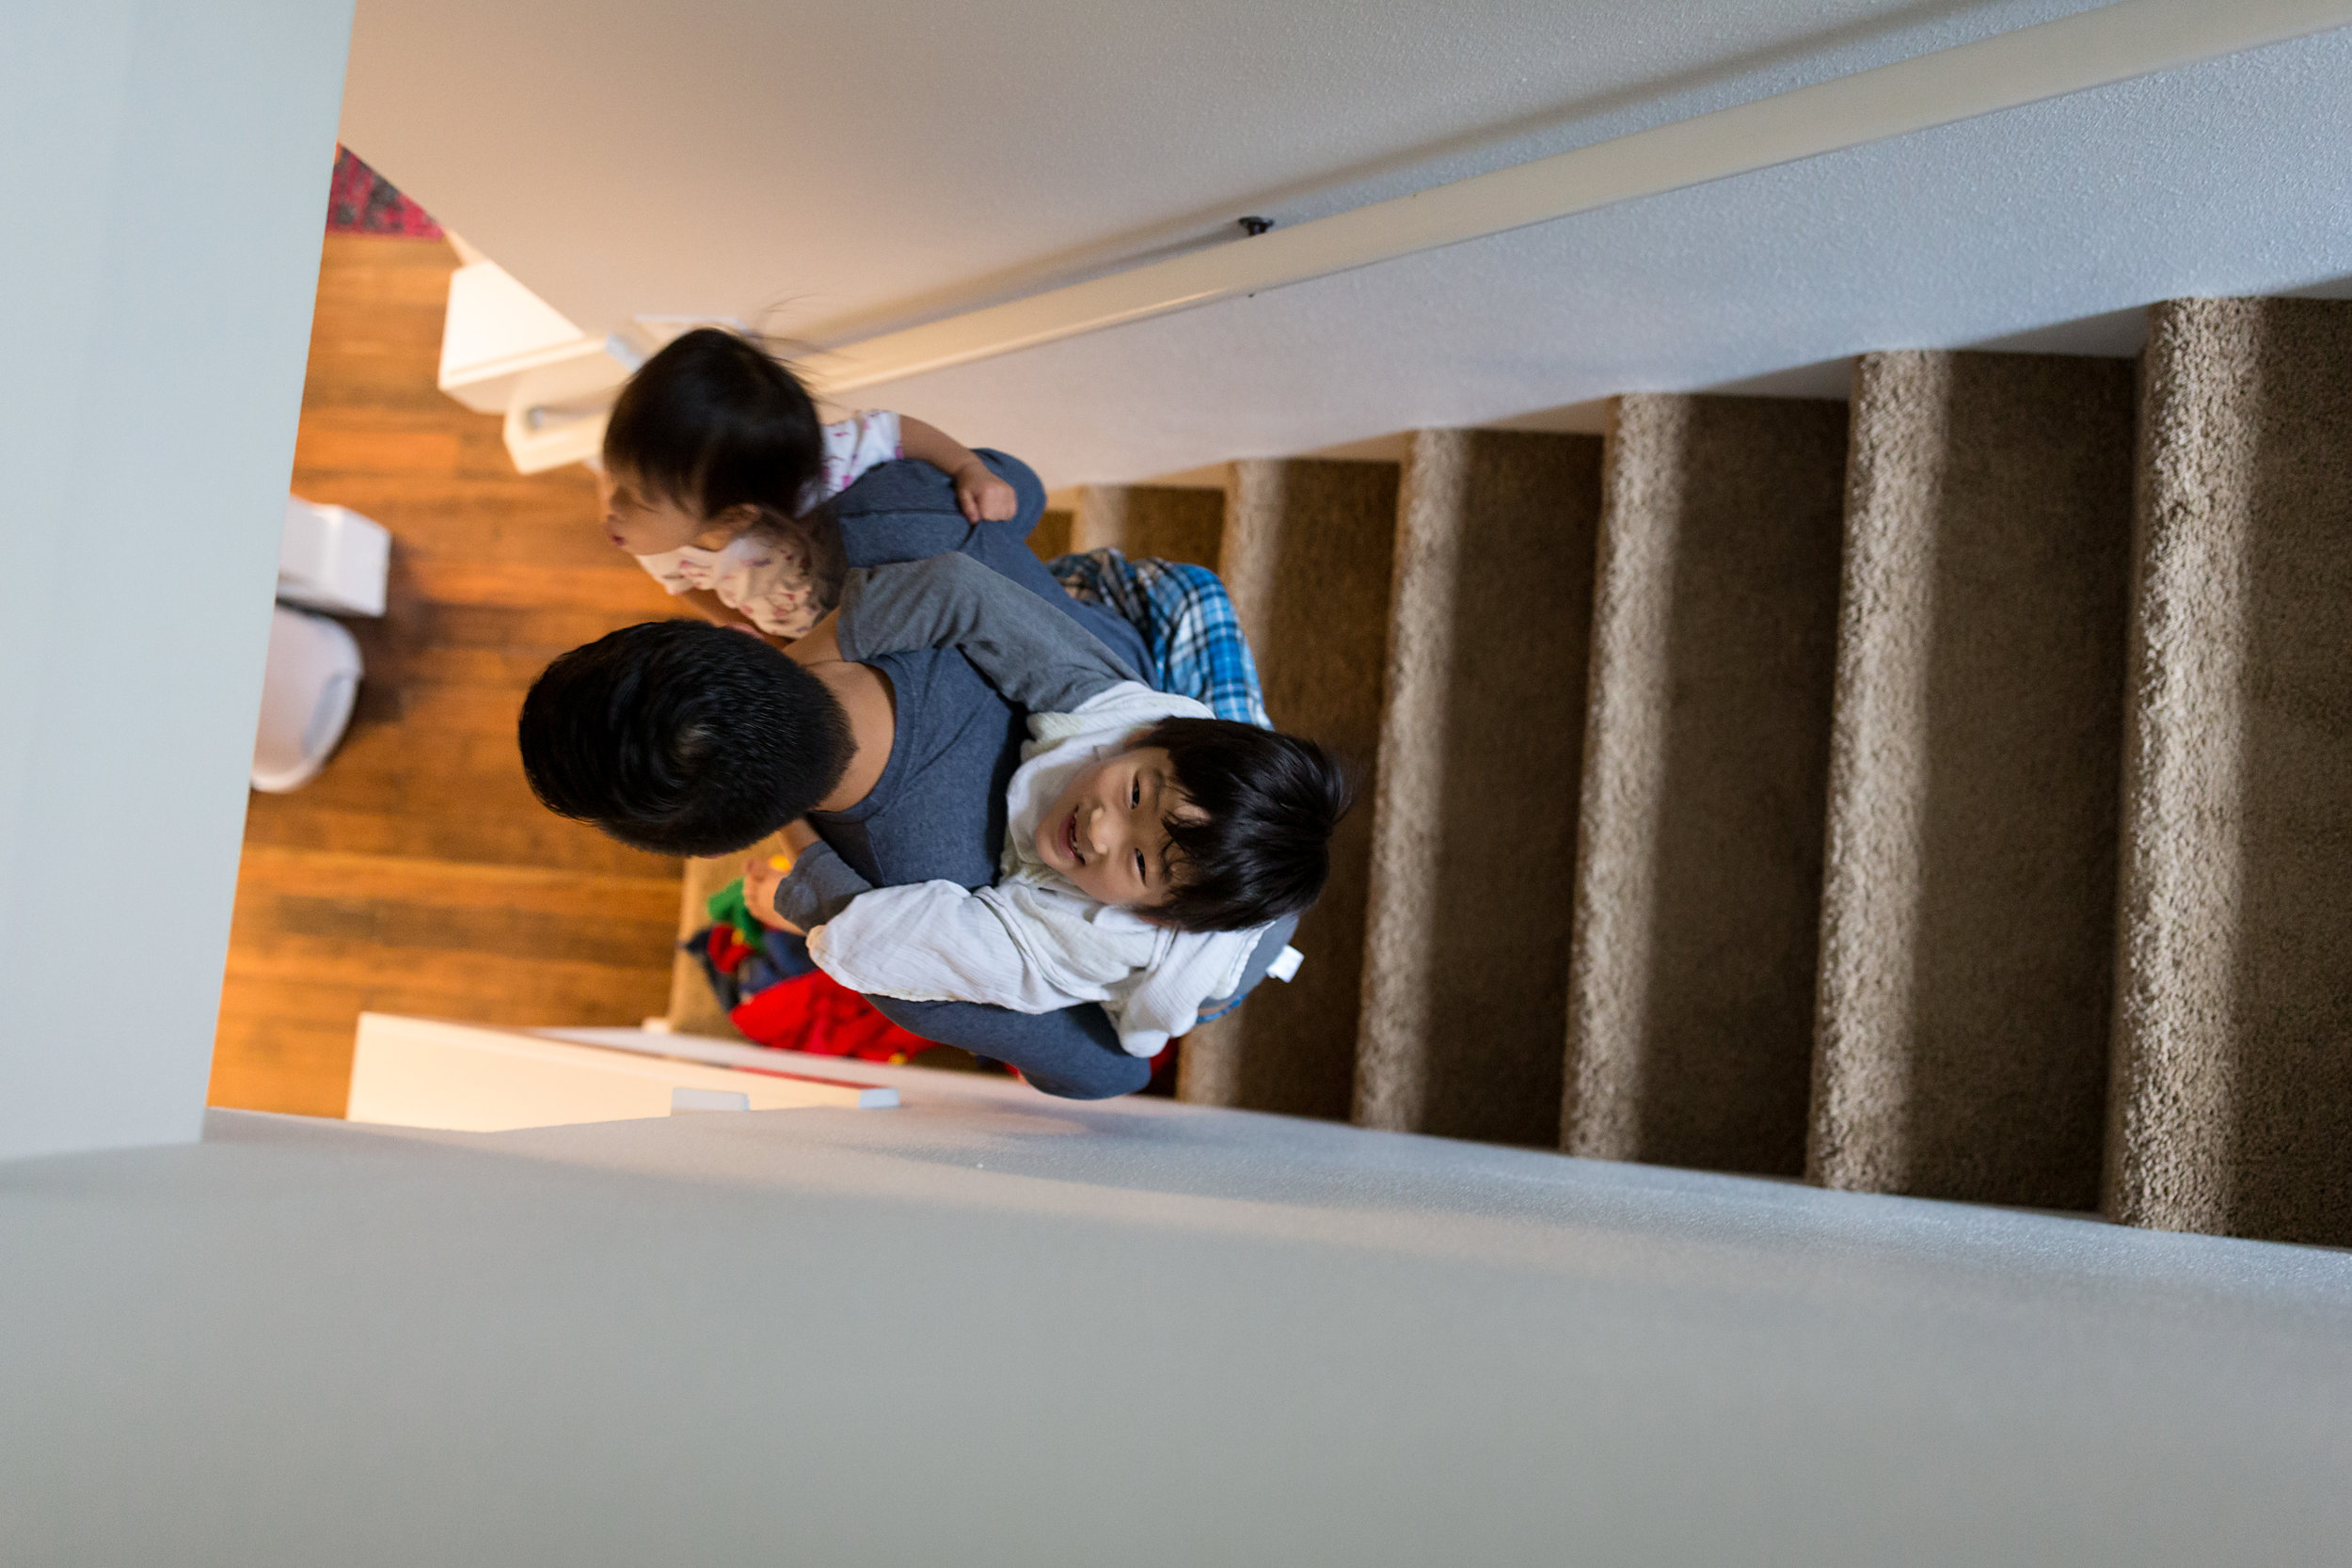 dad walking down stairs holding two kids